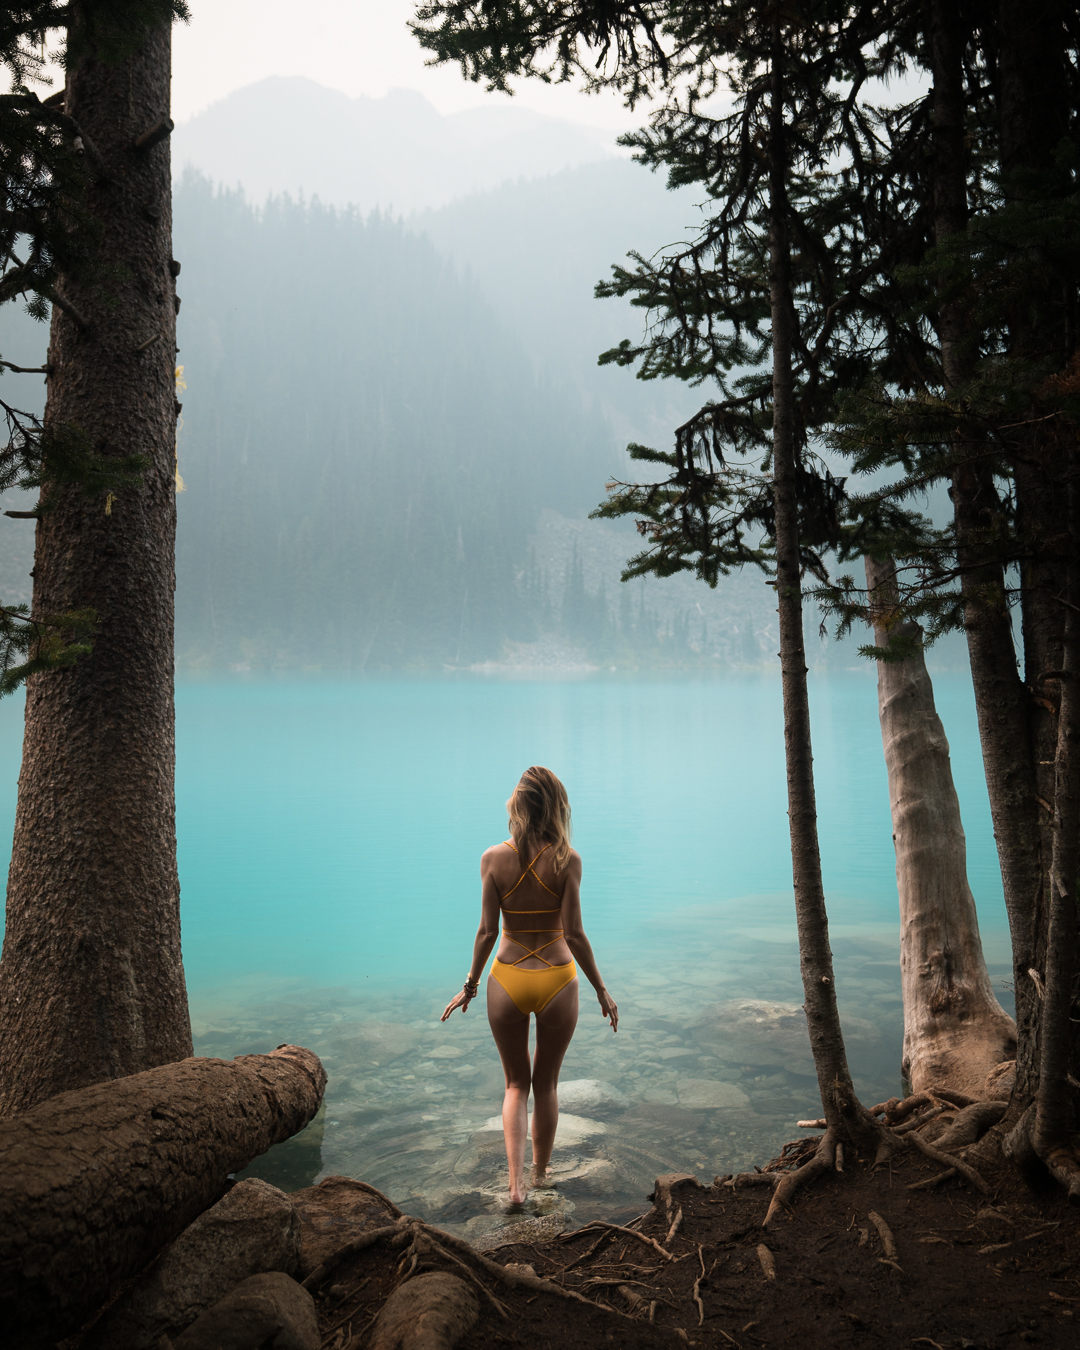 Cooling down in the water at Joffree Lakes, BC, Canada.